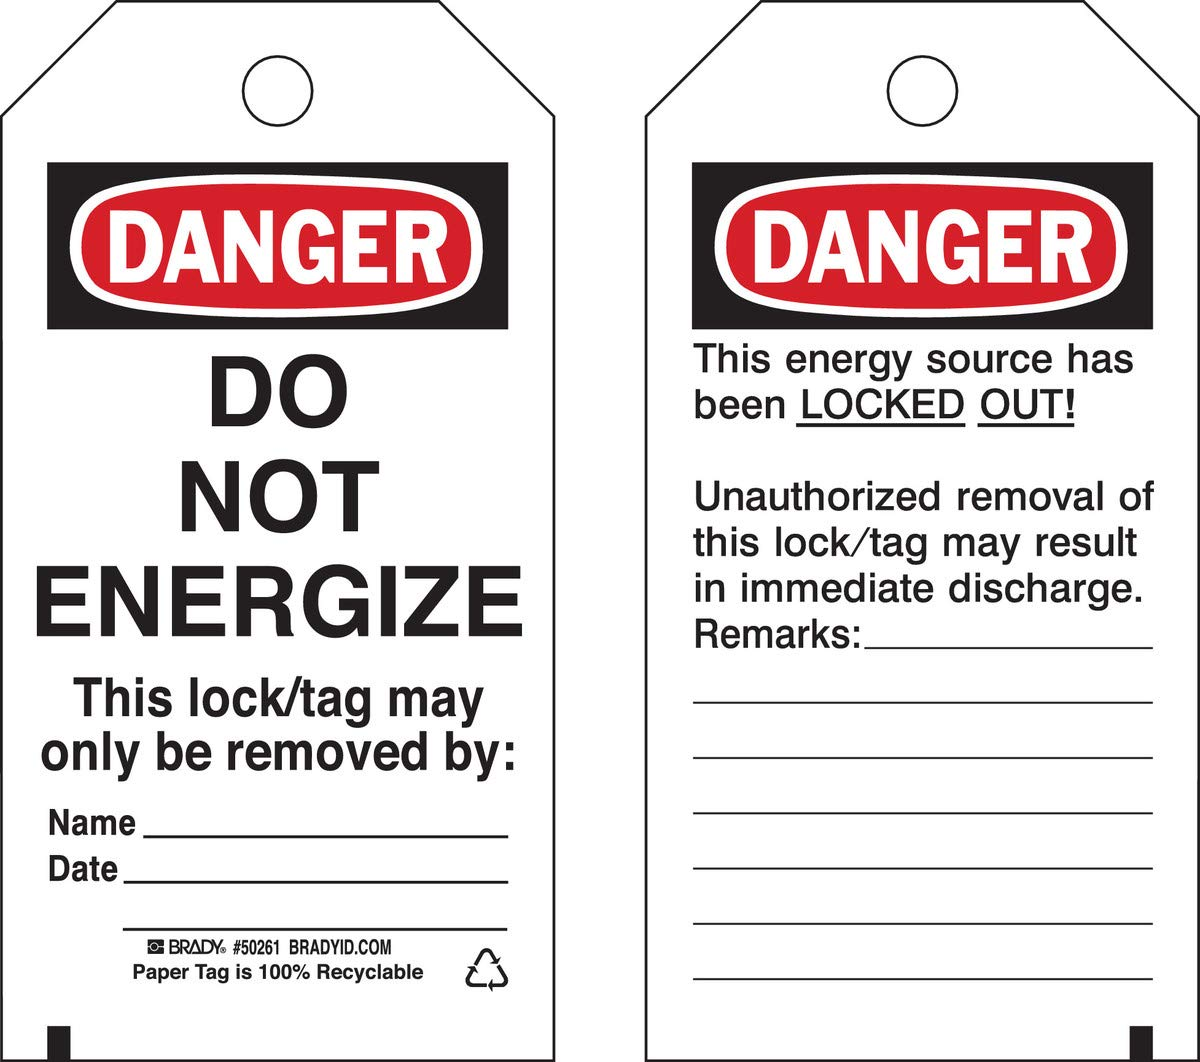 Brady 5 3/4'' X 3'' Black/Red/White Cardstock Tag''DO NOT ENERGIZE THIS LOCK/TAG MAY ONLY BE REMOVED'' by Brady USA (Image #1)